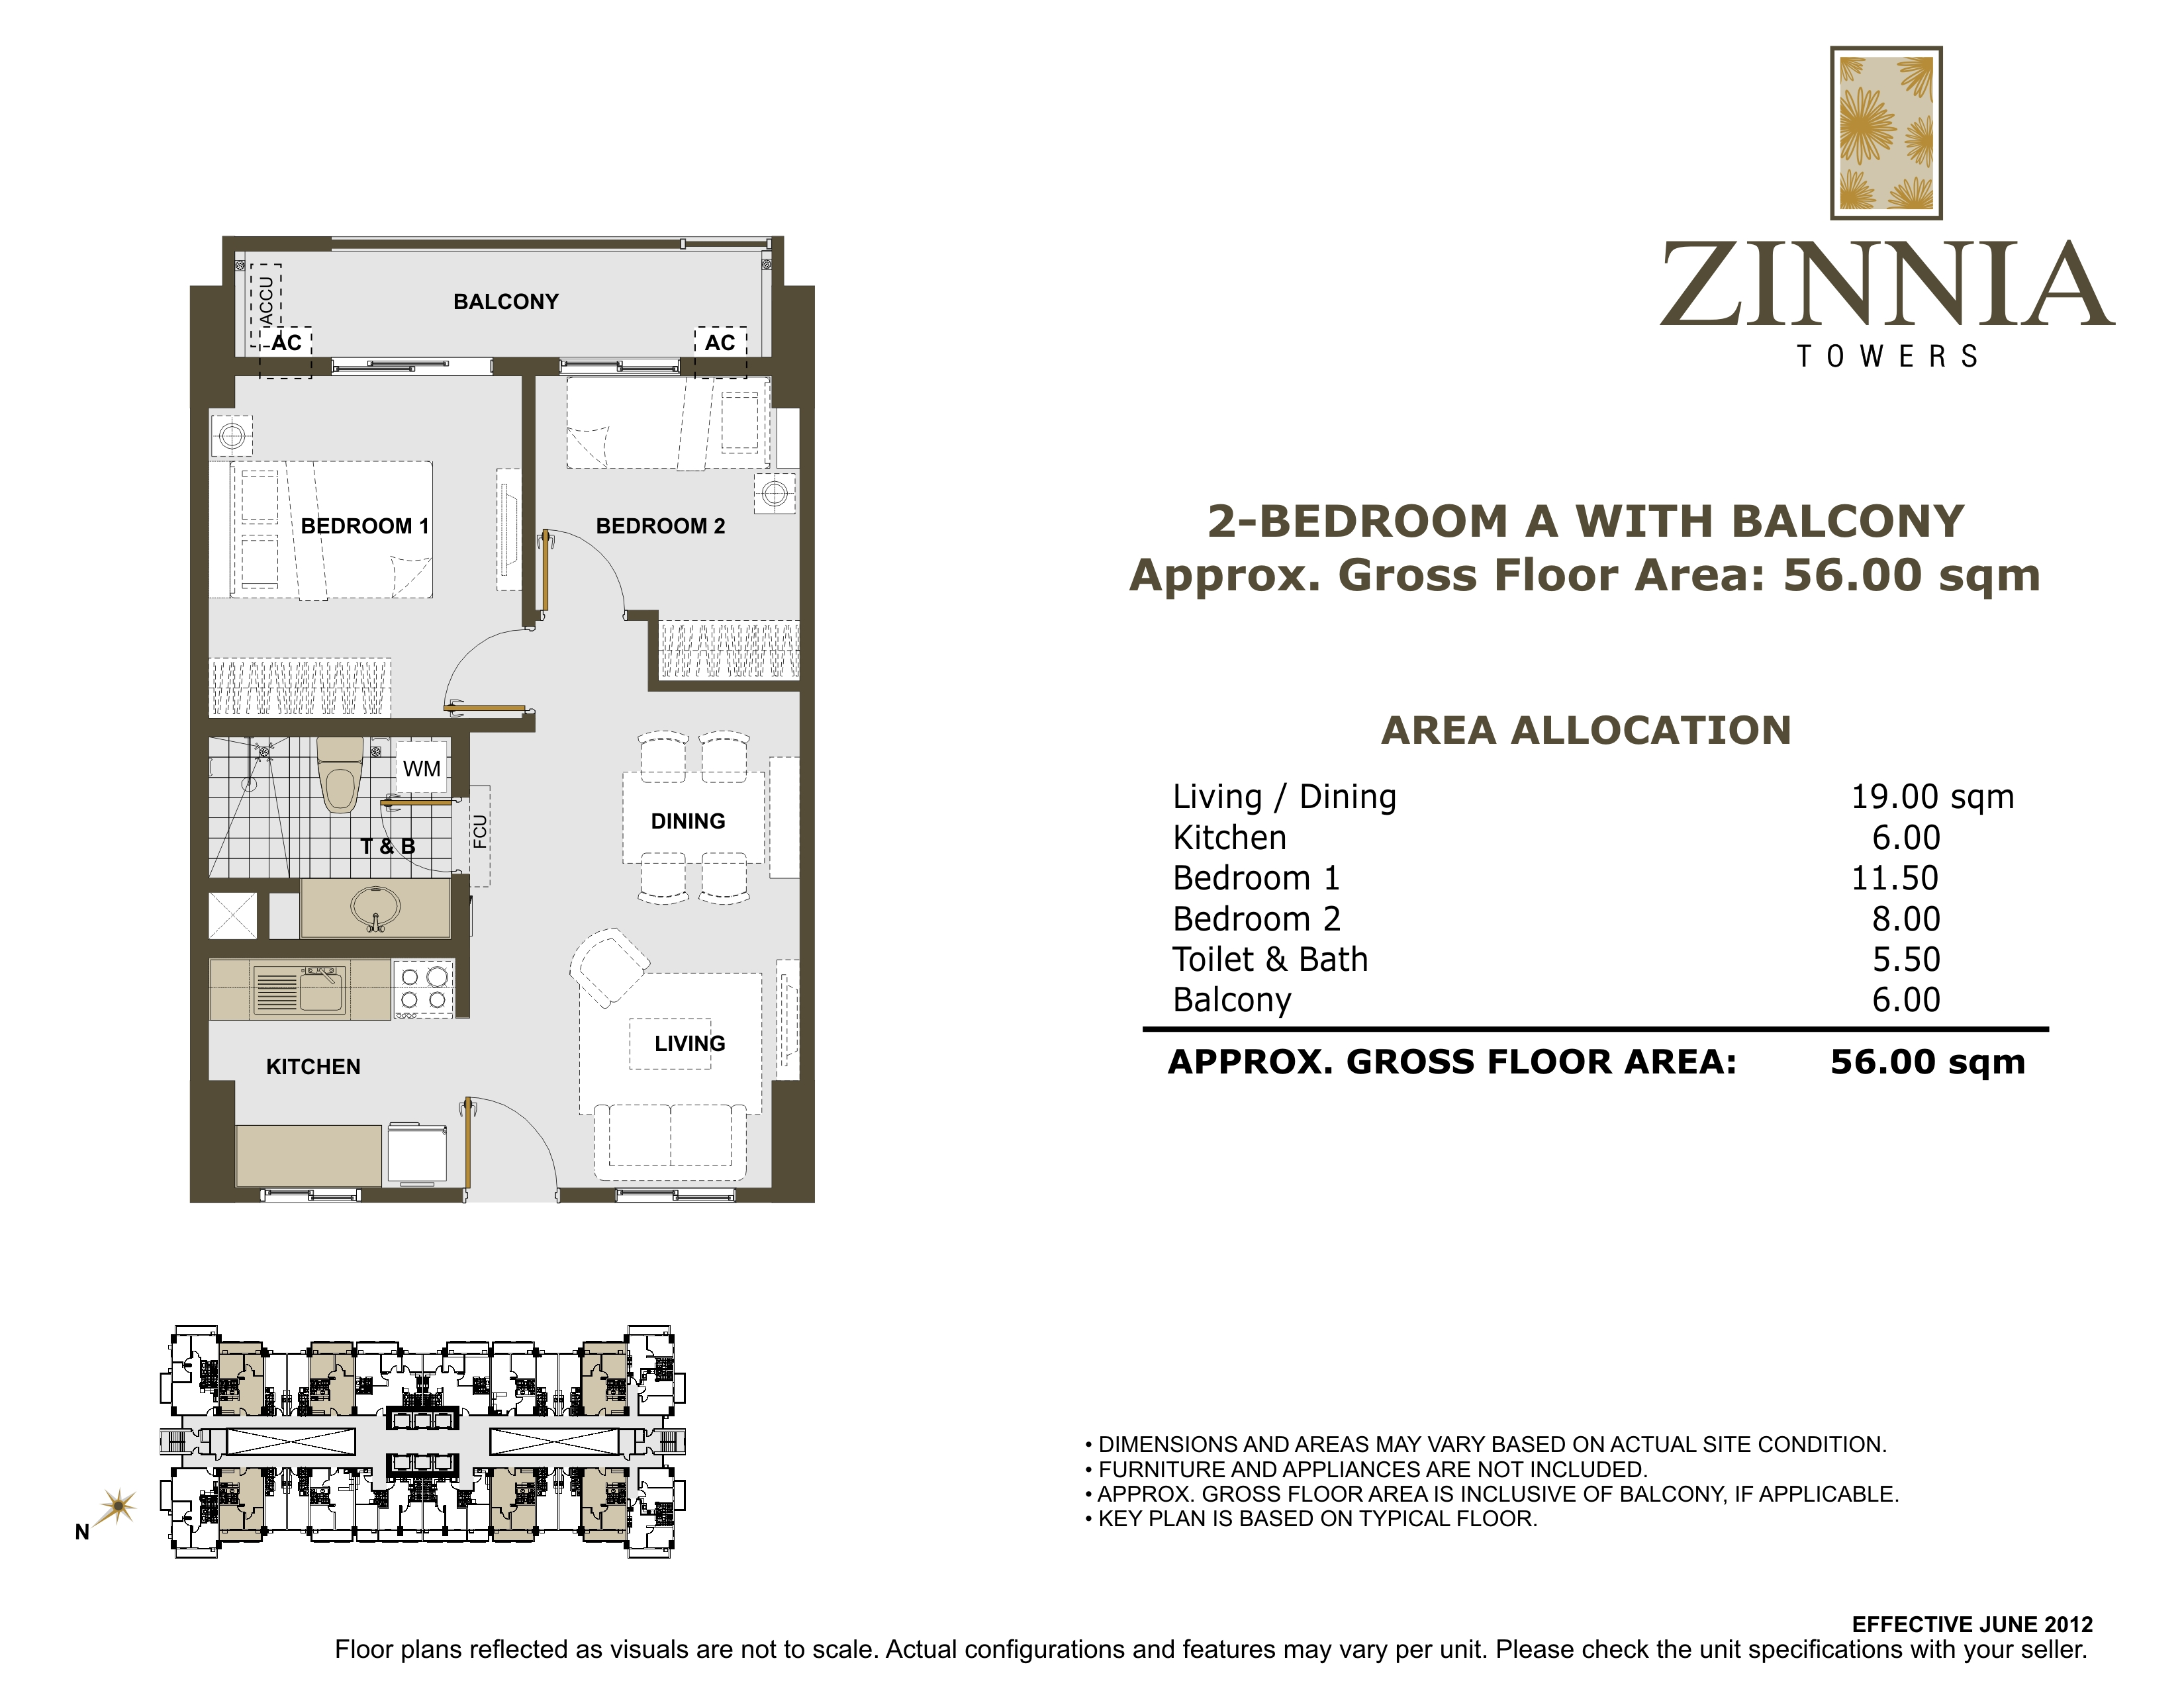 zinnia-towers-2br-a-with-balcony